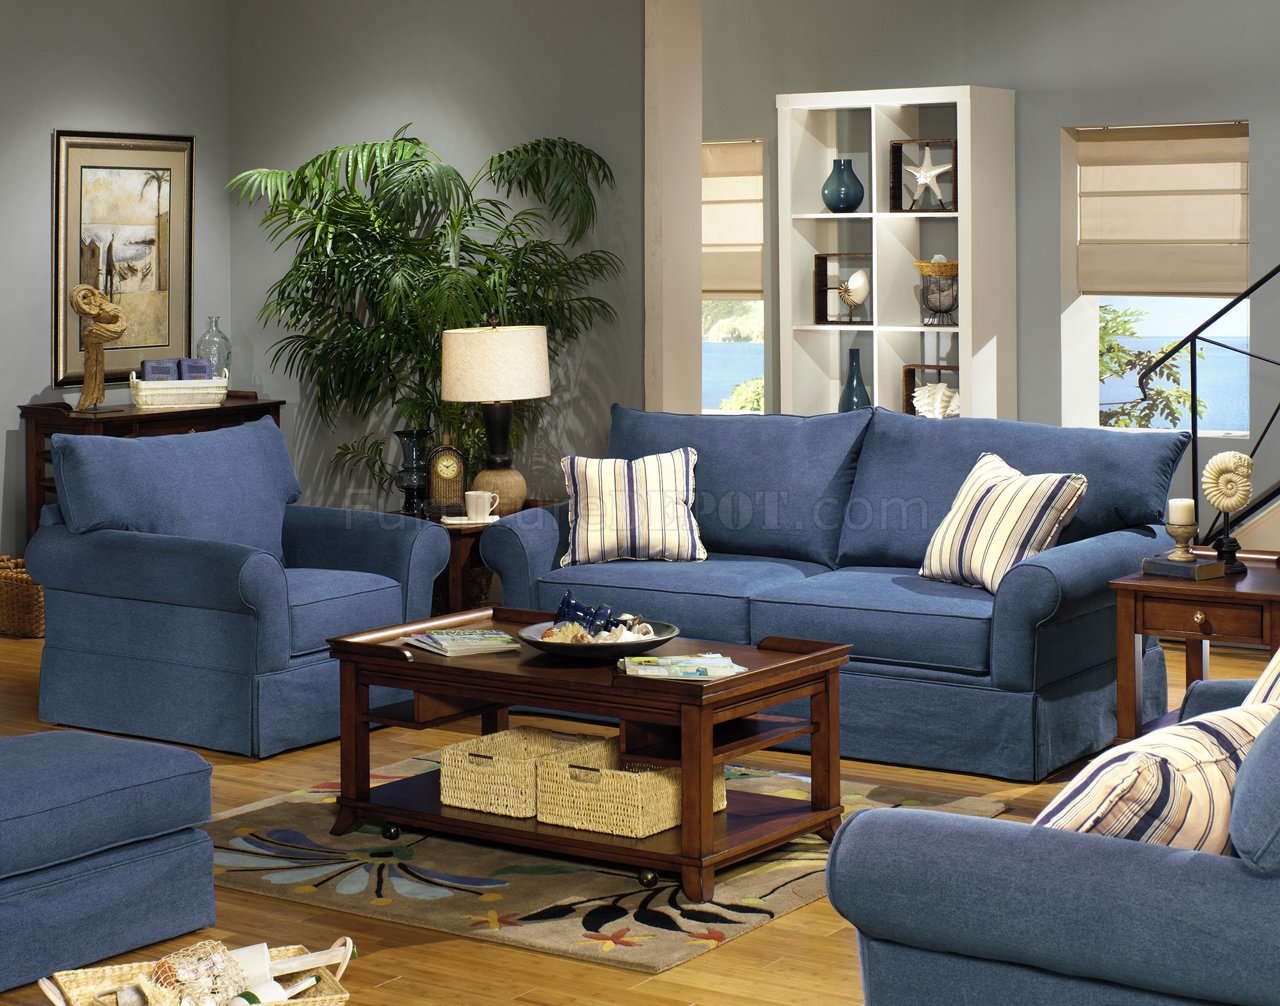 blue denim sofa bed hancock and moore leather prices fabric modern loveseat set w options